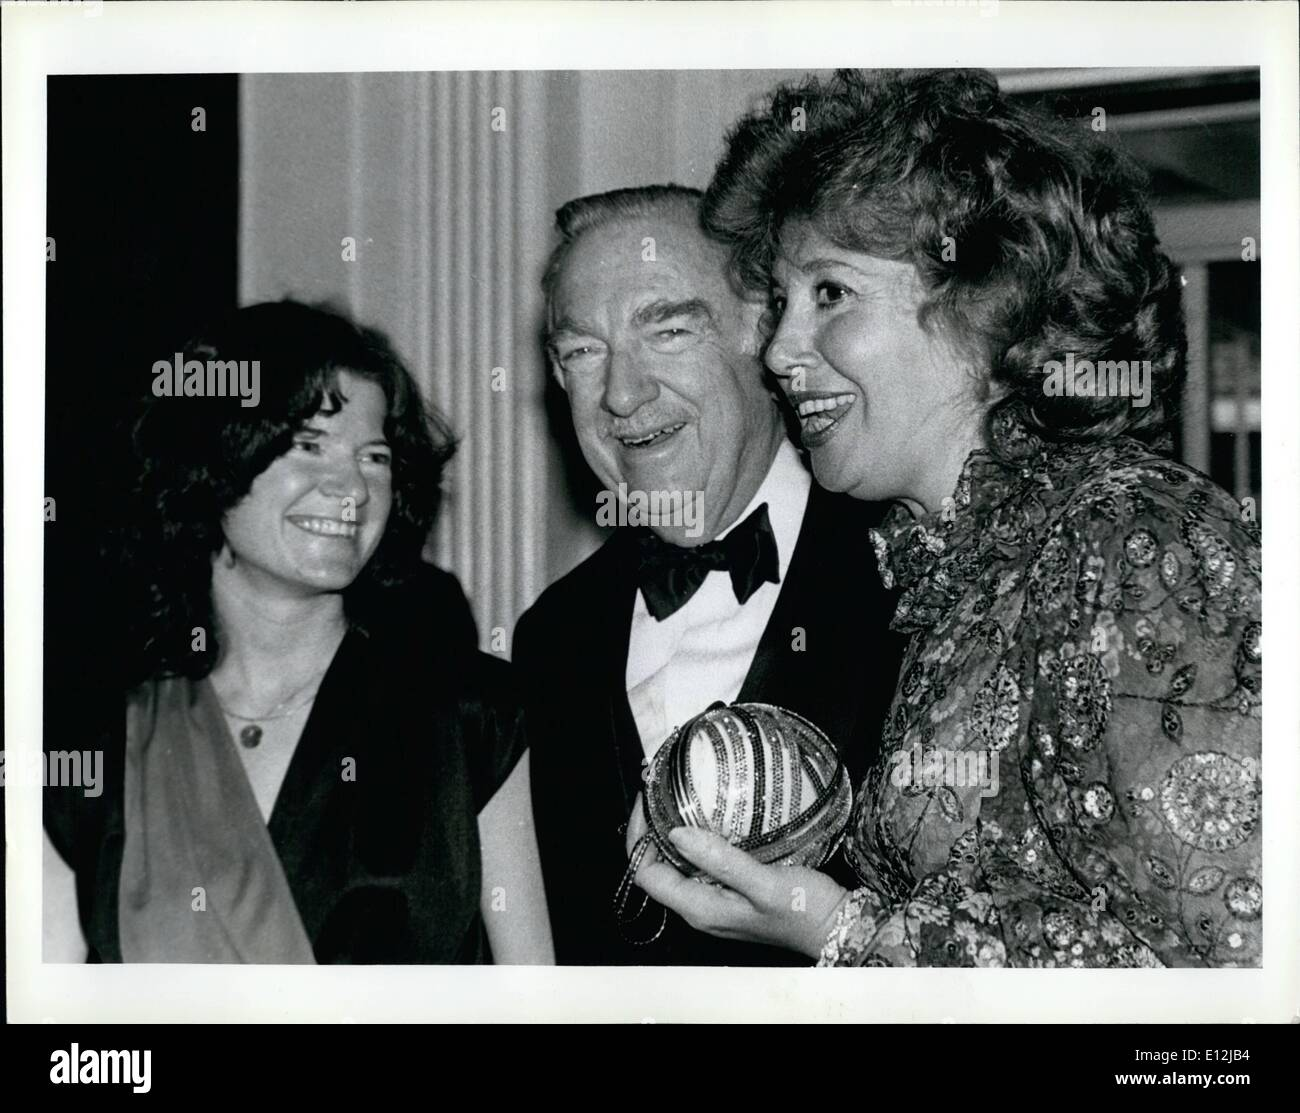 Feb. 24, 2012 - New York City - Feb. 18, 1981 - Waldorf - Astoia - The Scientists' Institue for Public Information hold a dinner-dance honoring CBS newsman Walter Cronkite. Left to Right are; Dr. Sally Ride, Astronaut(NASA Space Program), Walter Cronkite, CBS Newsman, and Beverly Sills, opera star and Mistress of Ceremonies. - Stock Image